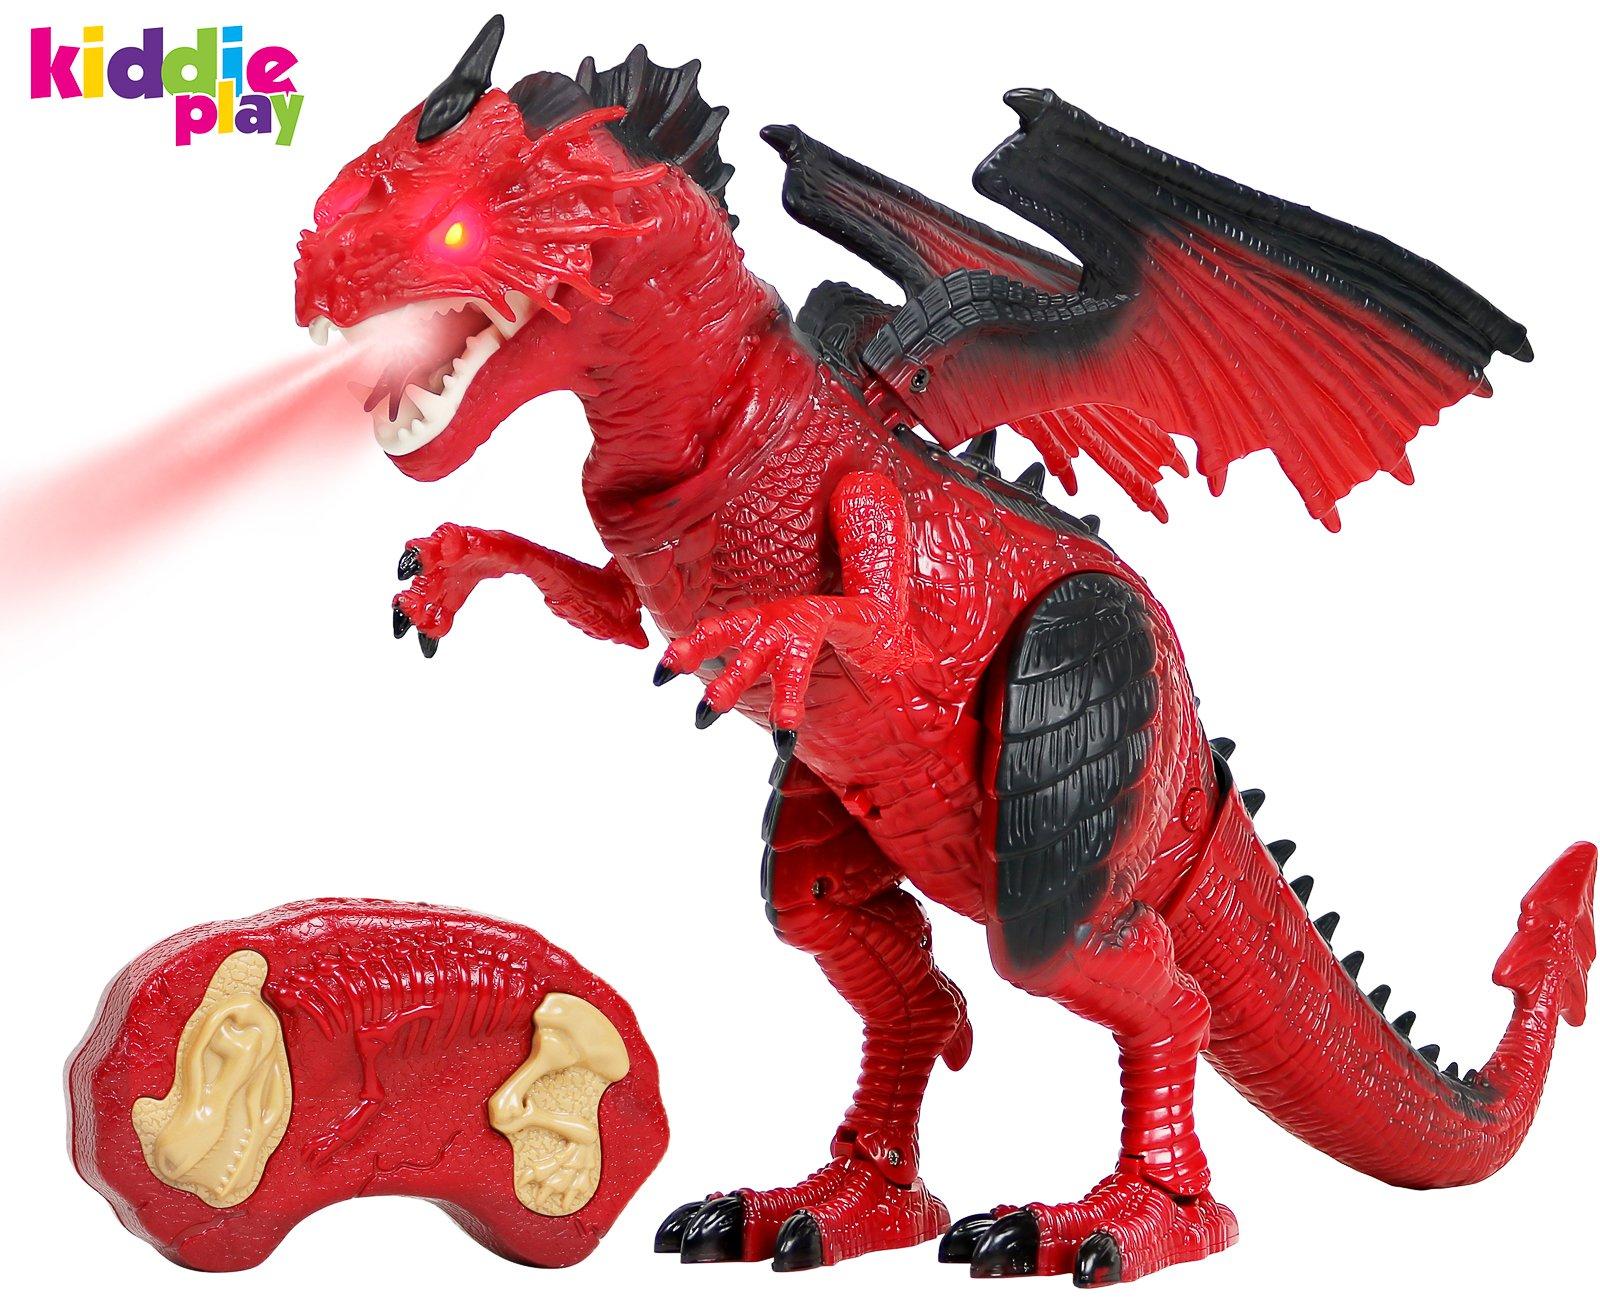 Kiddie Play Remote Control Dinosaur Toy Smoke Breathing and Walking Dragon with Lights and Sounds